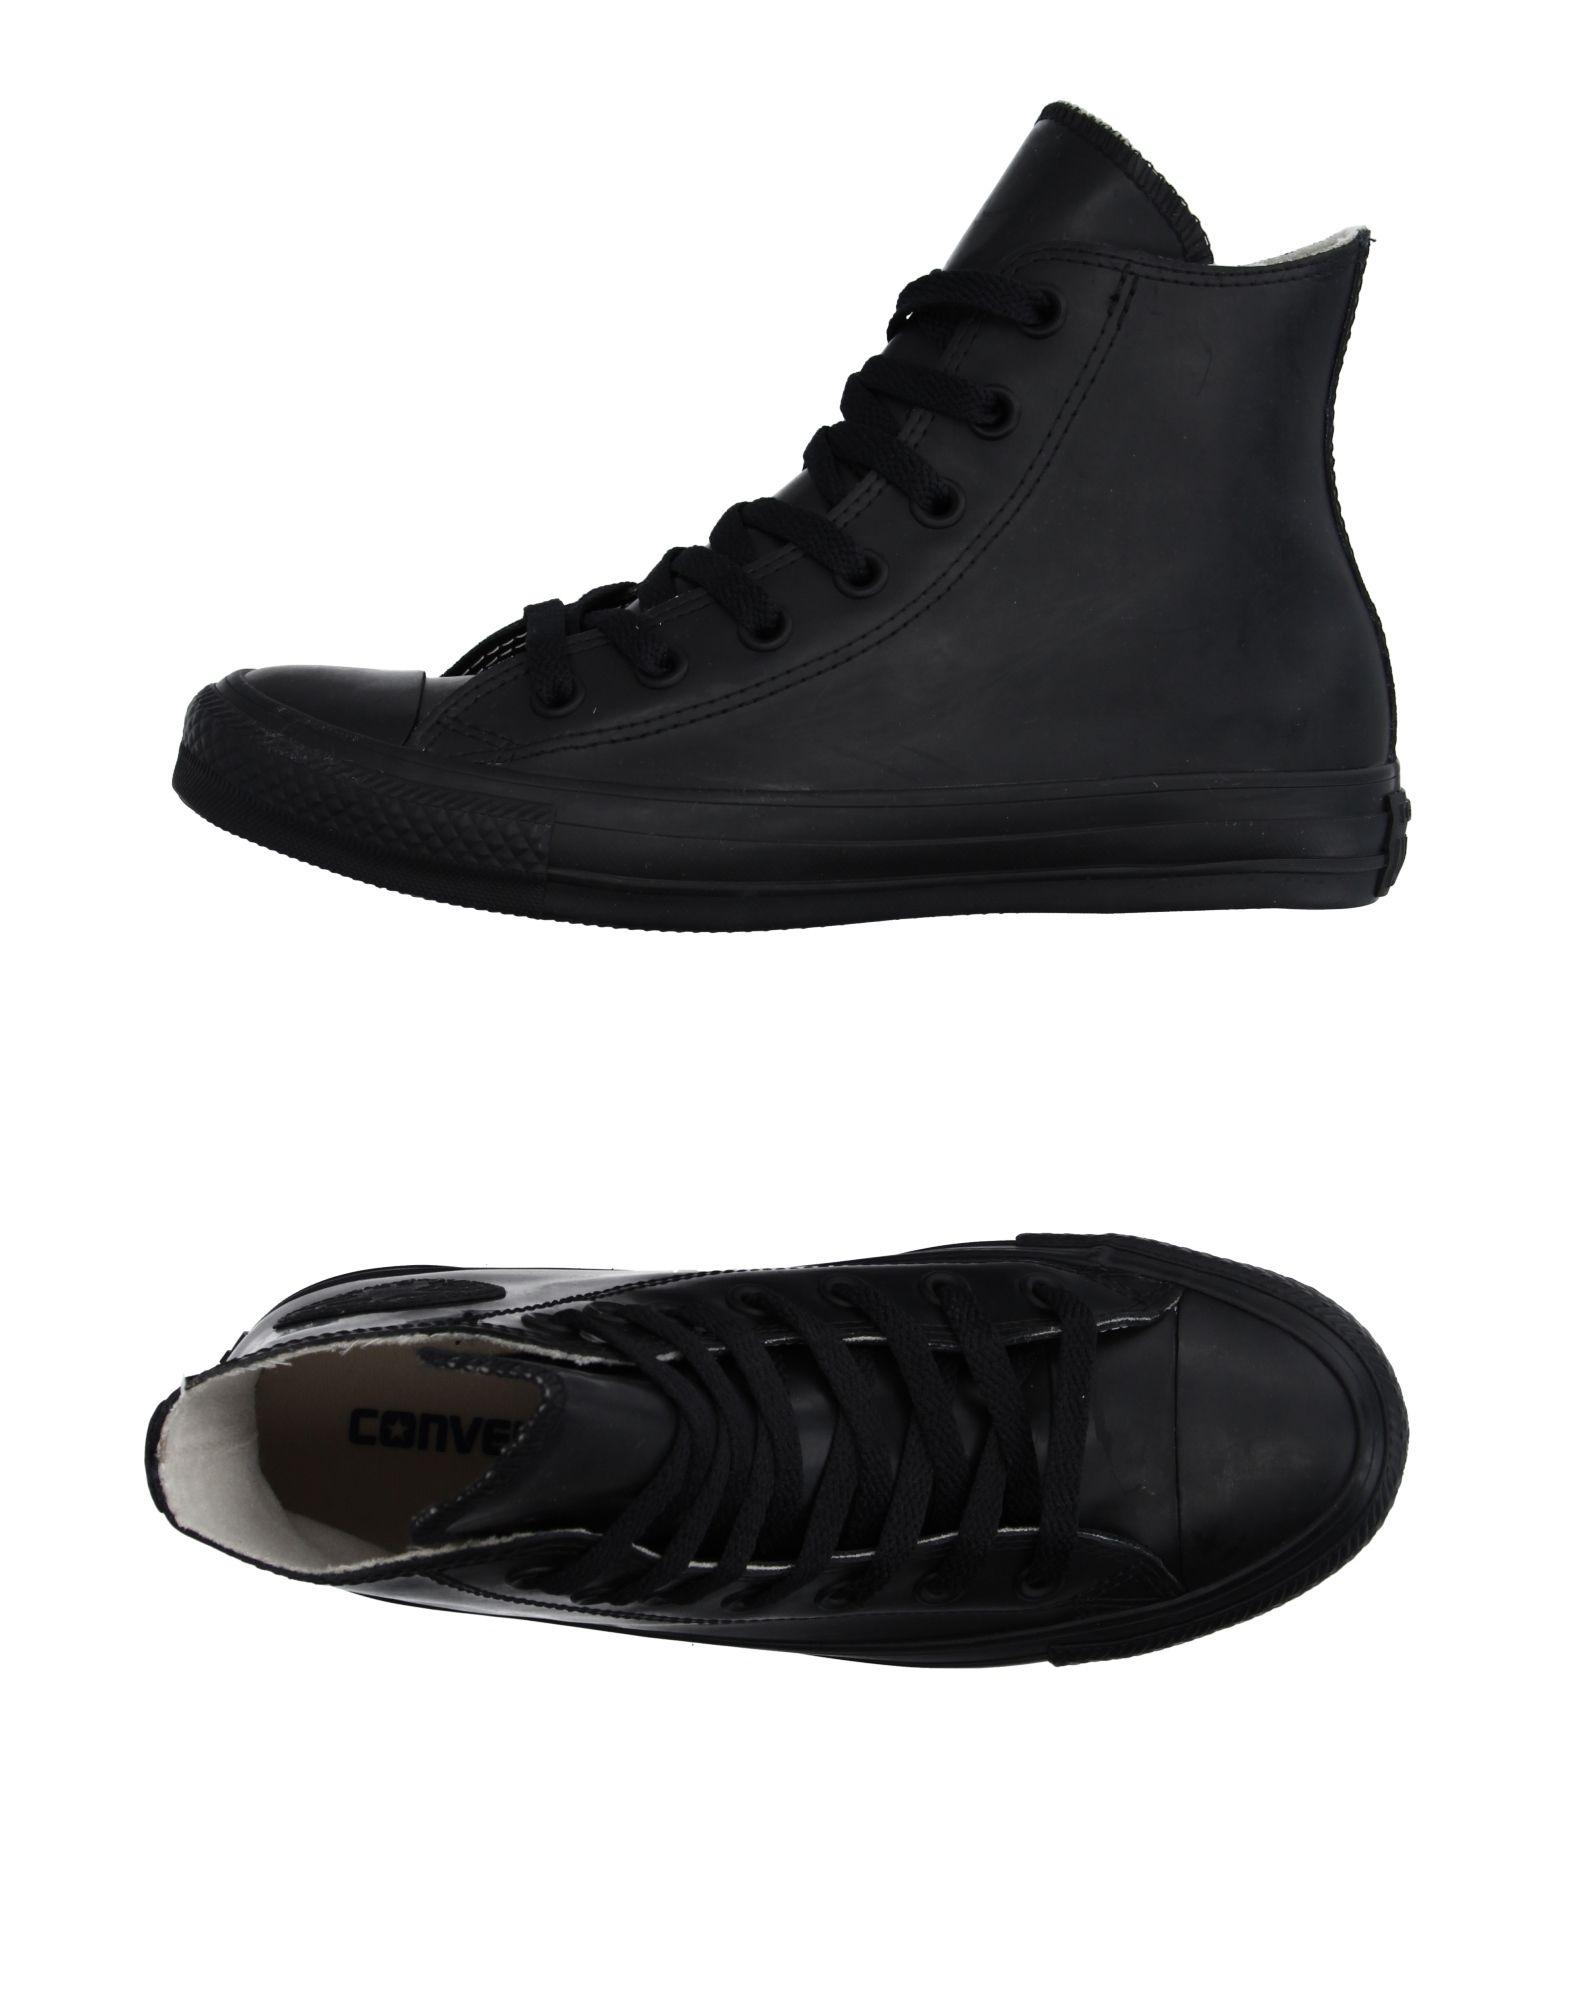 Lyst - Converse High-tops & Sneakers in Black